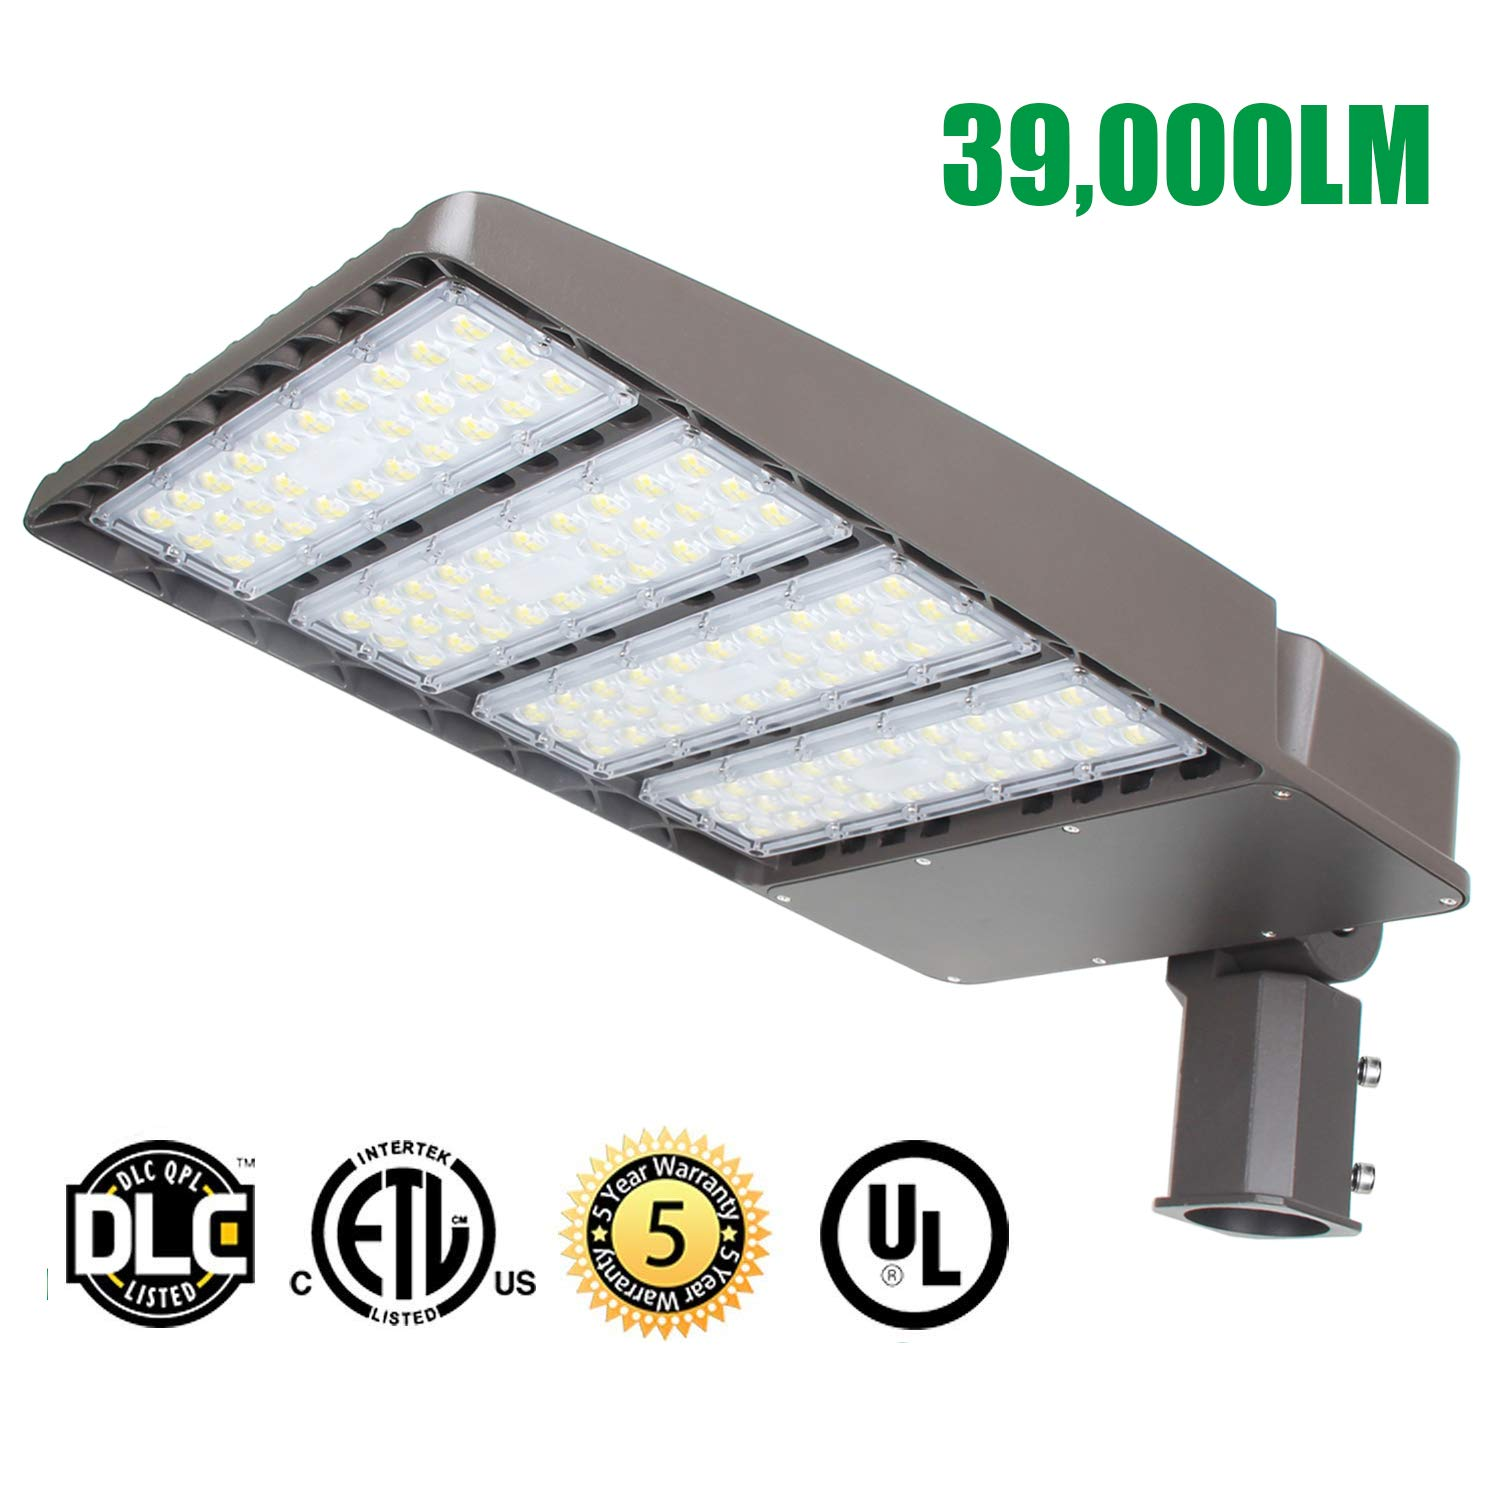 LED Parking Lot Lights 300W, 39000LM LED Shoebox Pole Lights Fixture (1000W HID/HPS Replacement) 5700K, IP65, AC 100-277V, UL DLC Listed, Outdoor Area Street Security Lighting for Stadium, Roadways